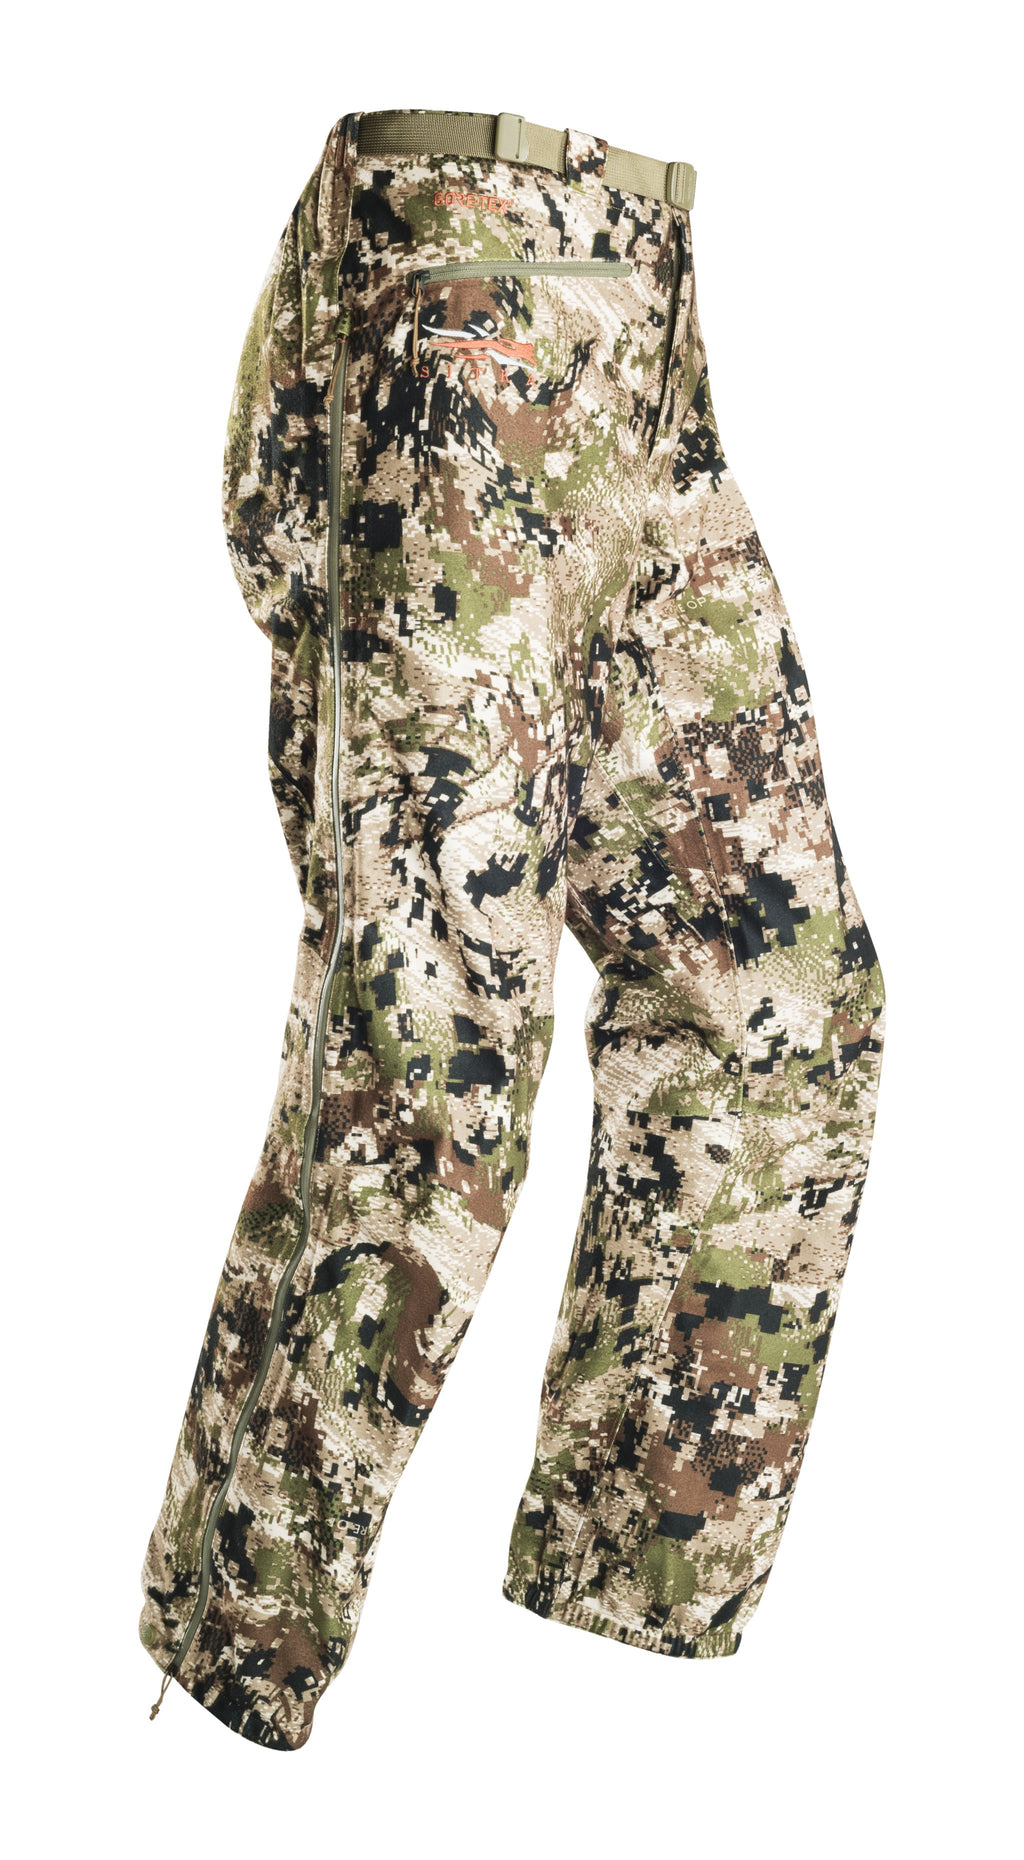 Sitka Thunderhead Pant- Discontinued